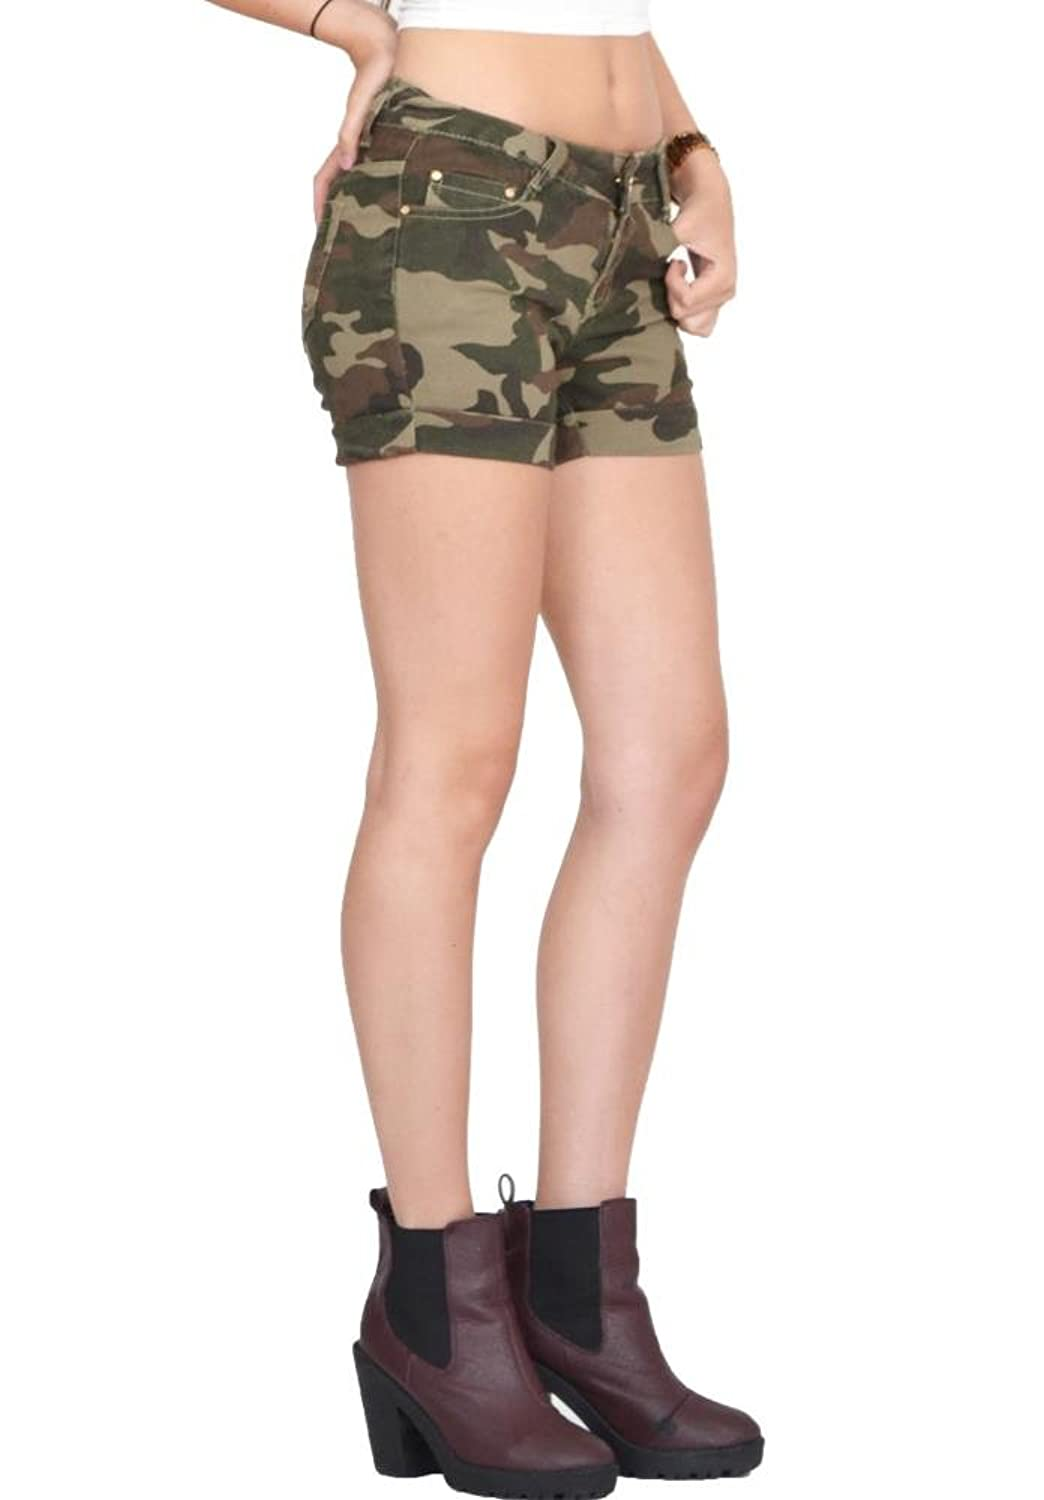 Unbranded Army Camouflage Fitted Stretch Hot Pants Shorts - Dark Green (6):  Amazon.co.uk: Clothing